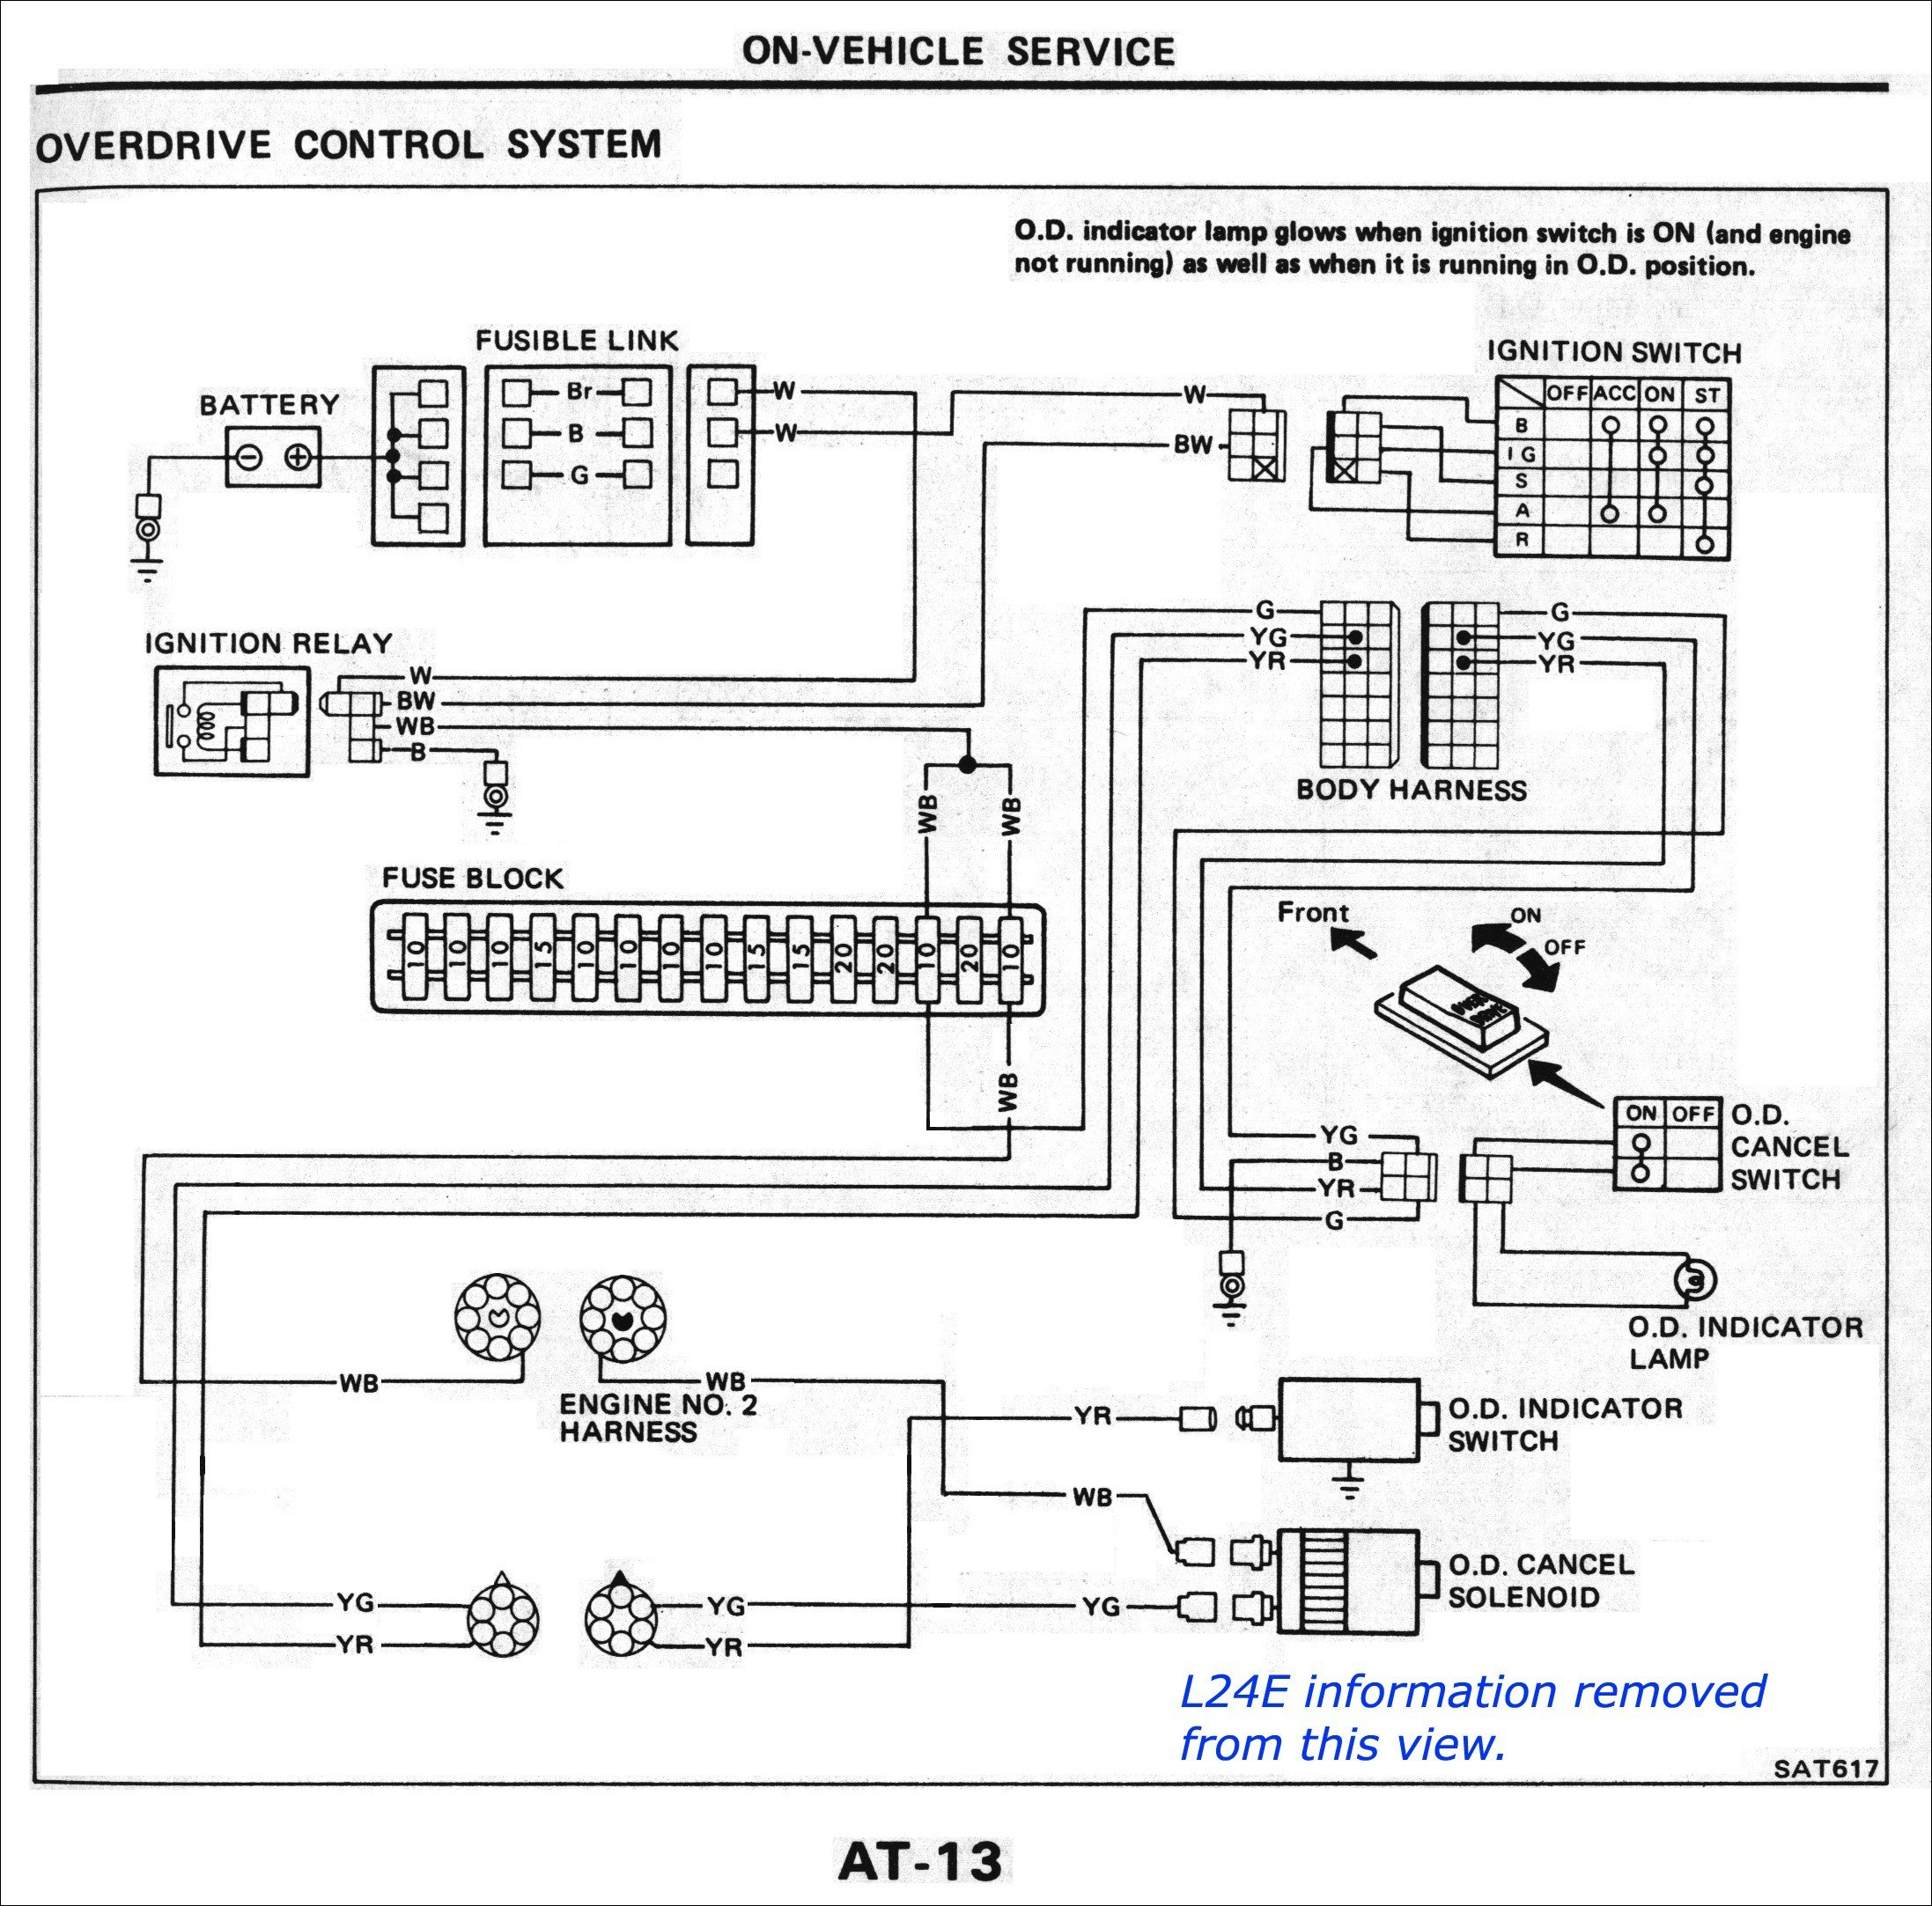 nissan altima wiring diagram Collection-Nissan Altima Wiring Diagram Inspirational Maxxima Light Wiring Diagram Nissan Altima Wiring Diagram Inspirational Maxxima 8-r